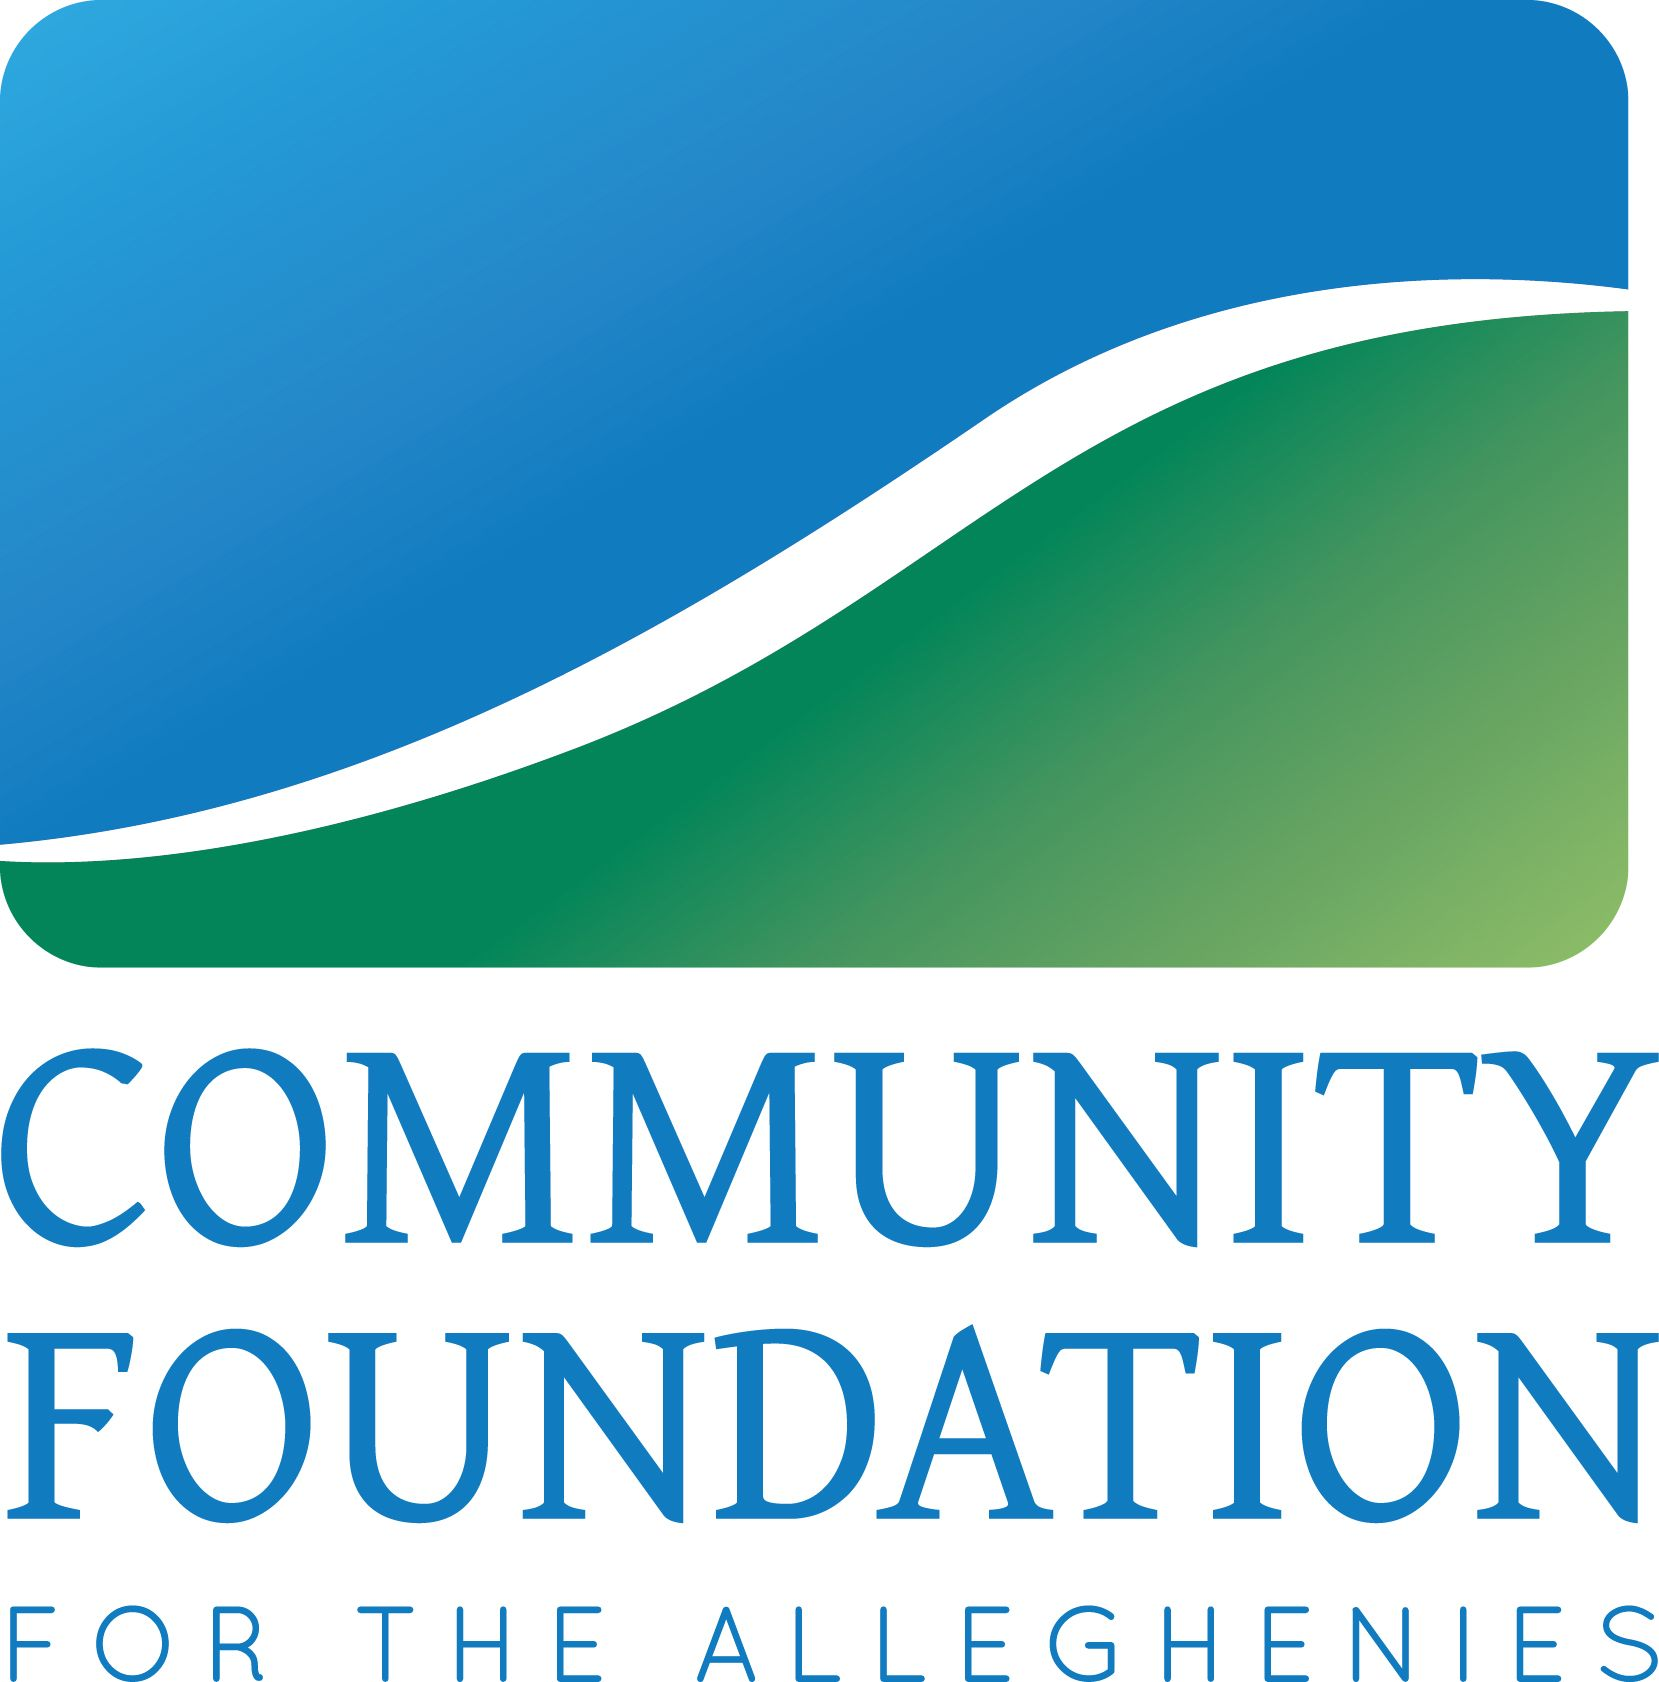 Community Foundation for the Alleghenies